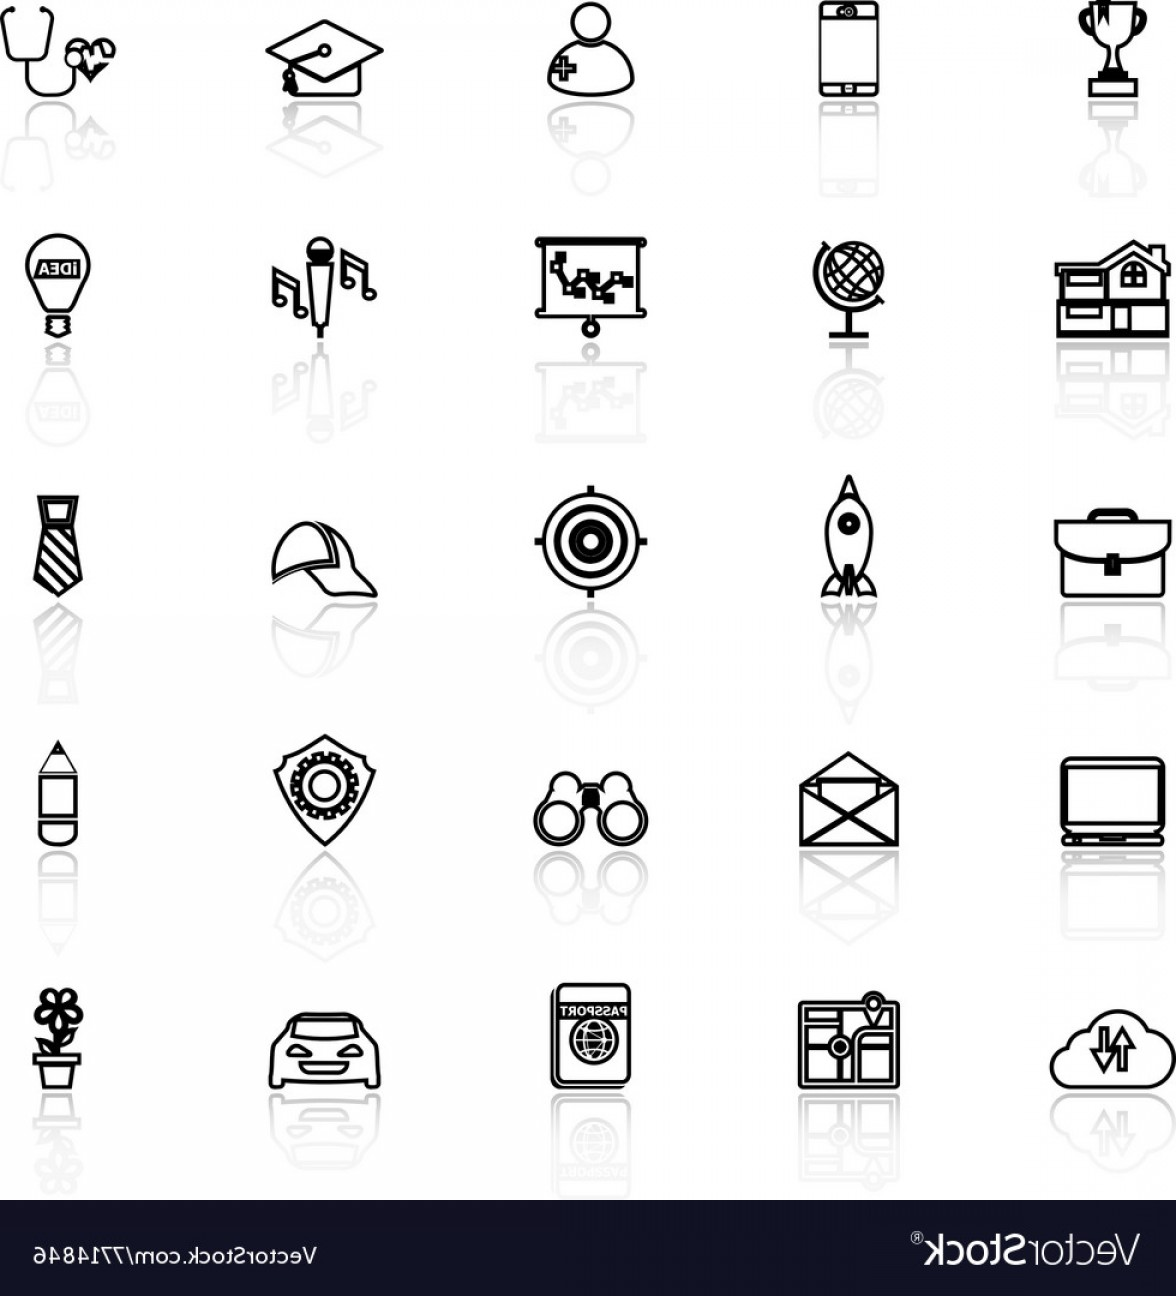 Vectors Job Description: Job Description Line Icons With Reflect On White Vector